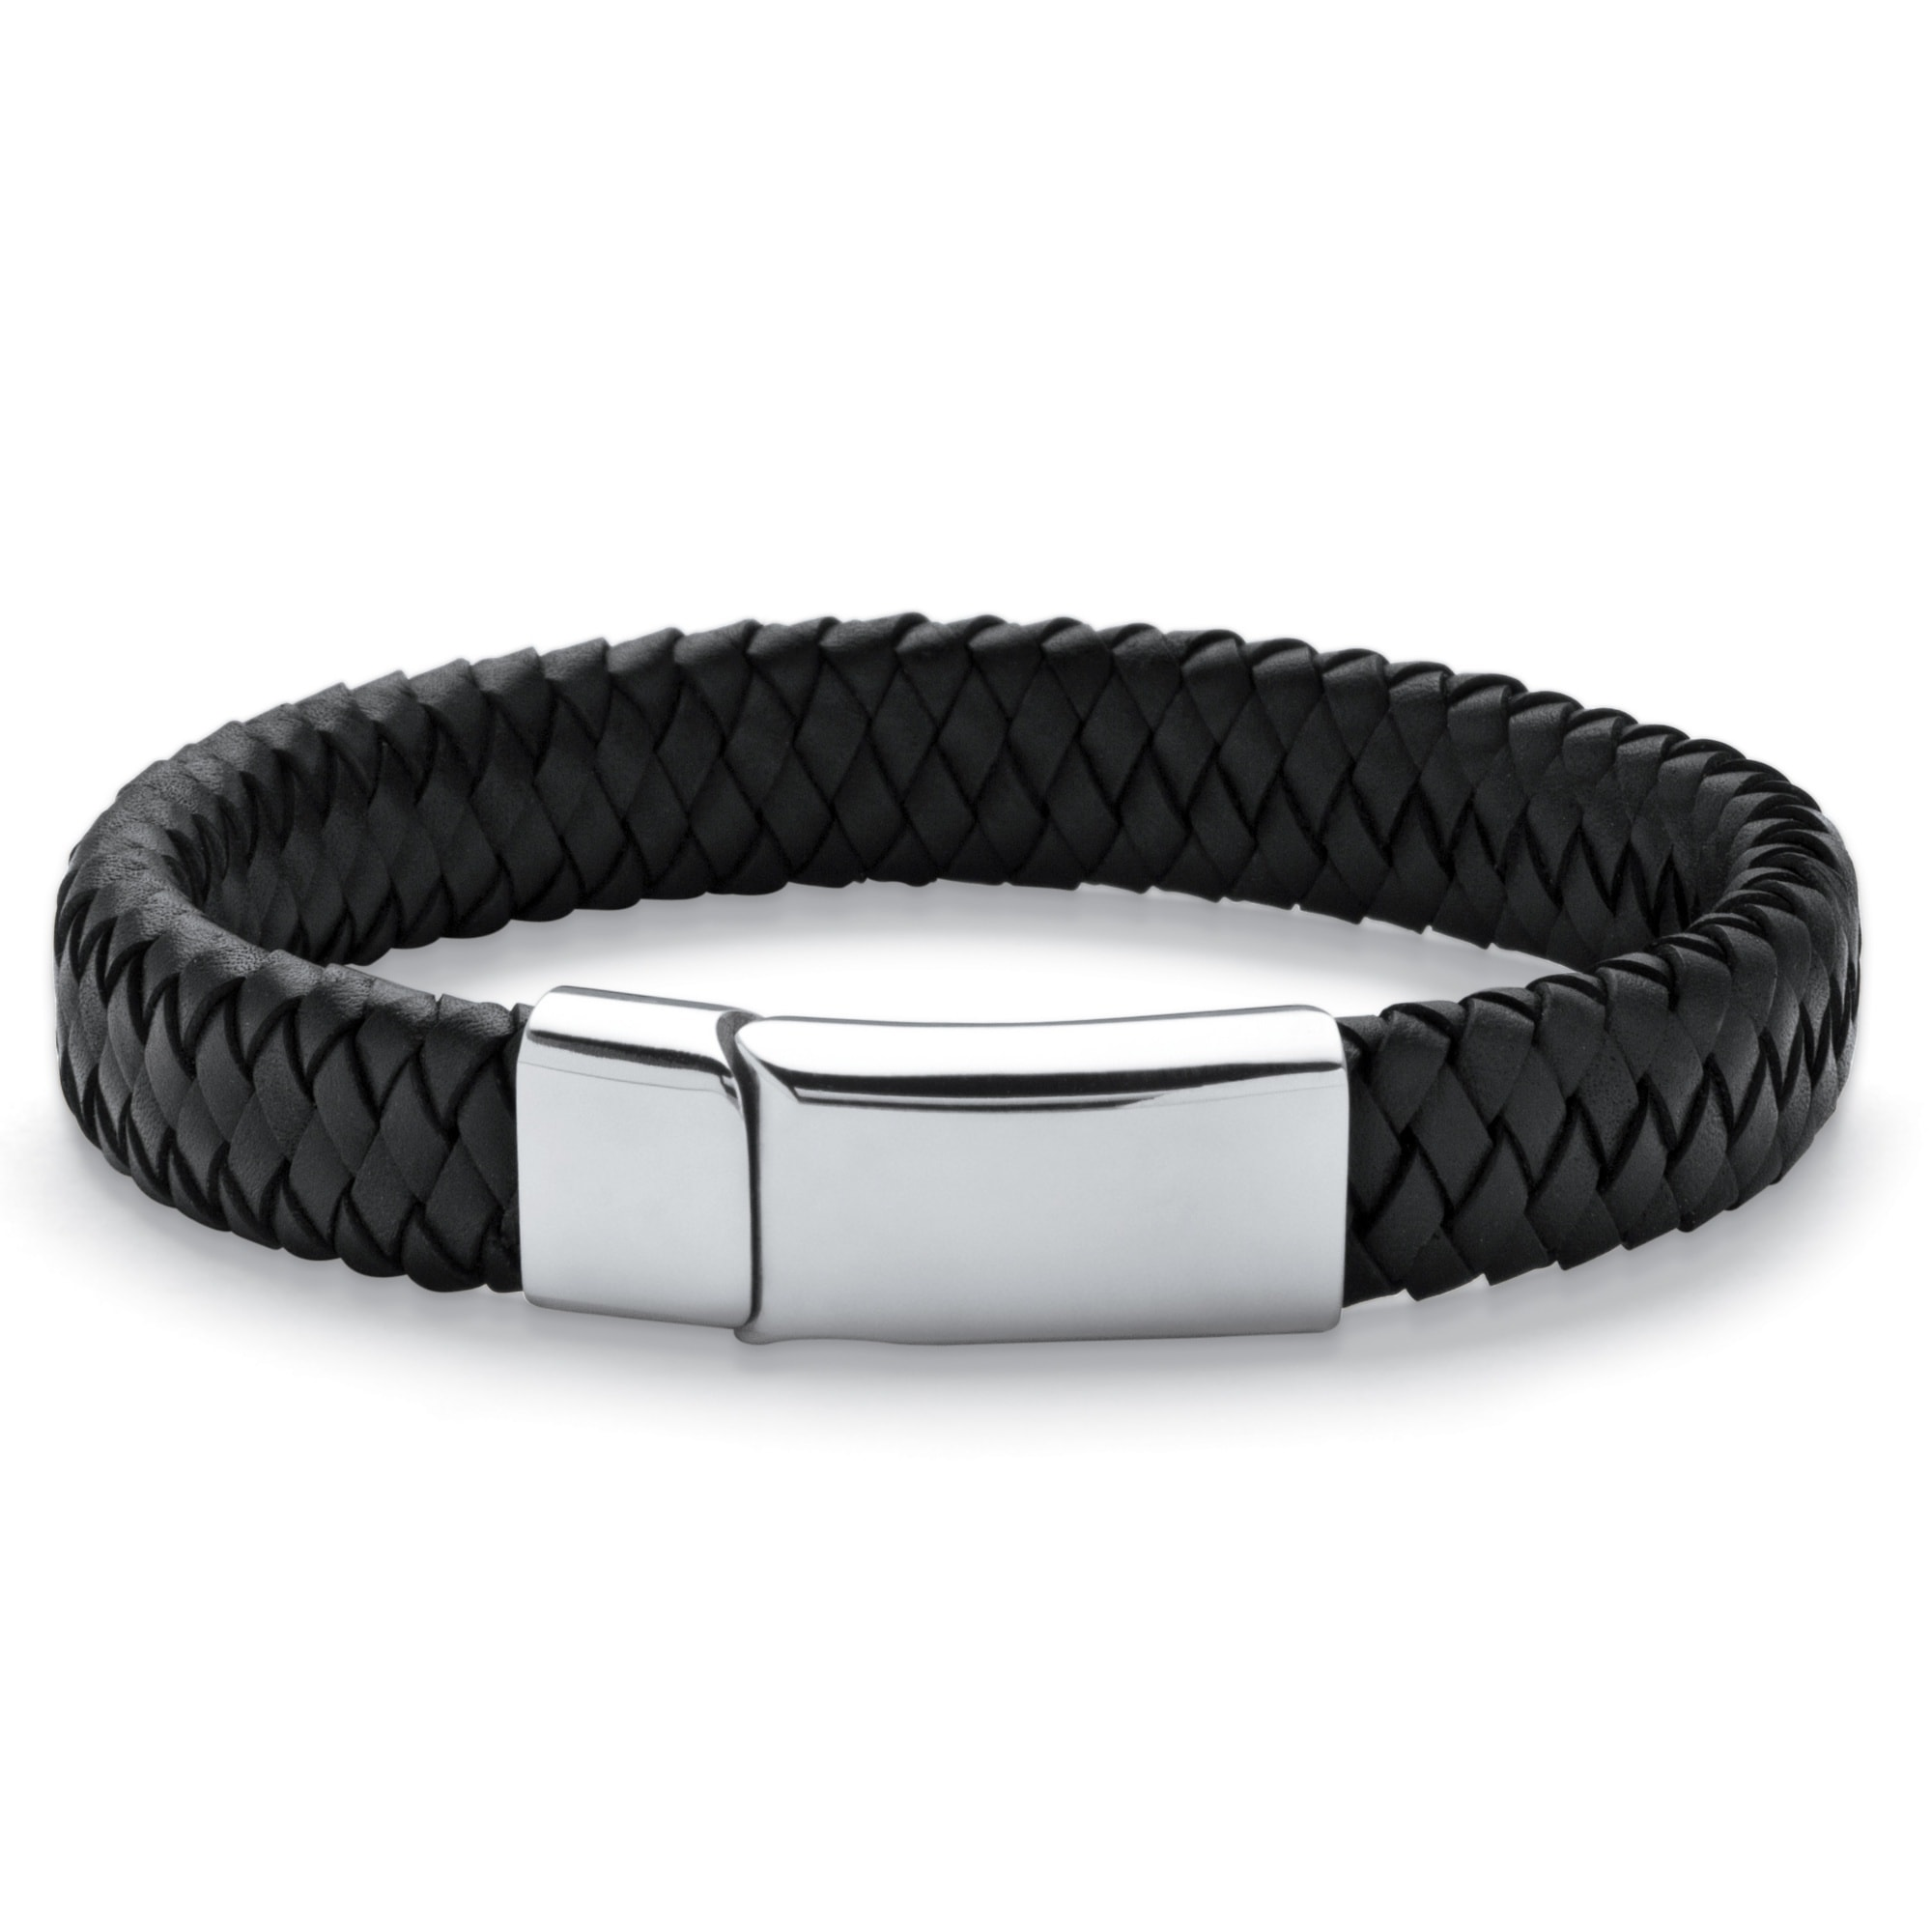 Men S Black Leather And Stainless Steel Bracelet